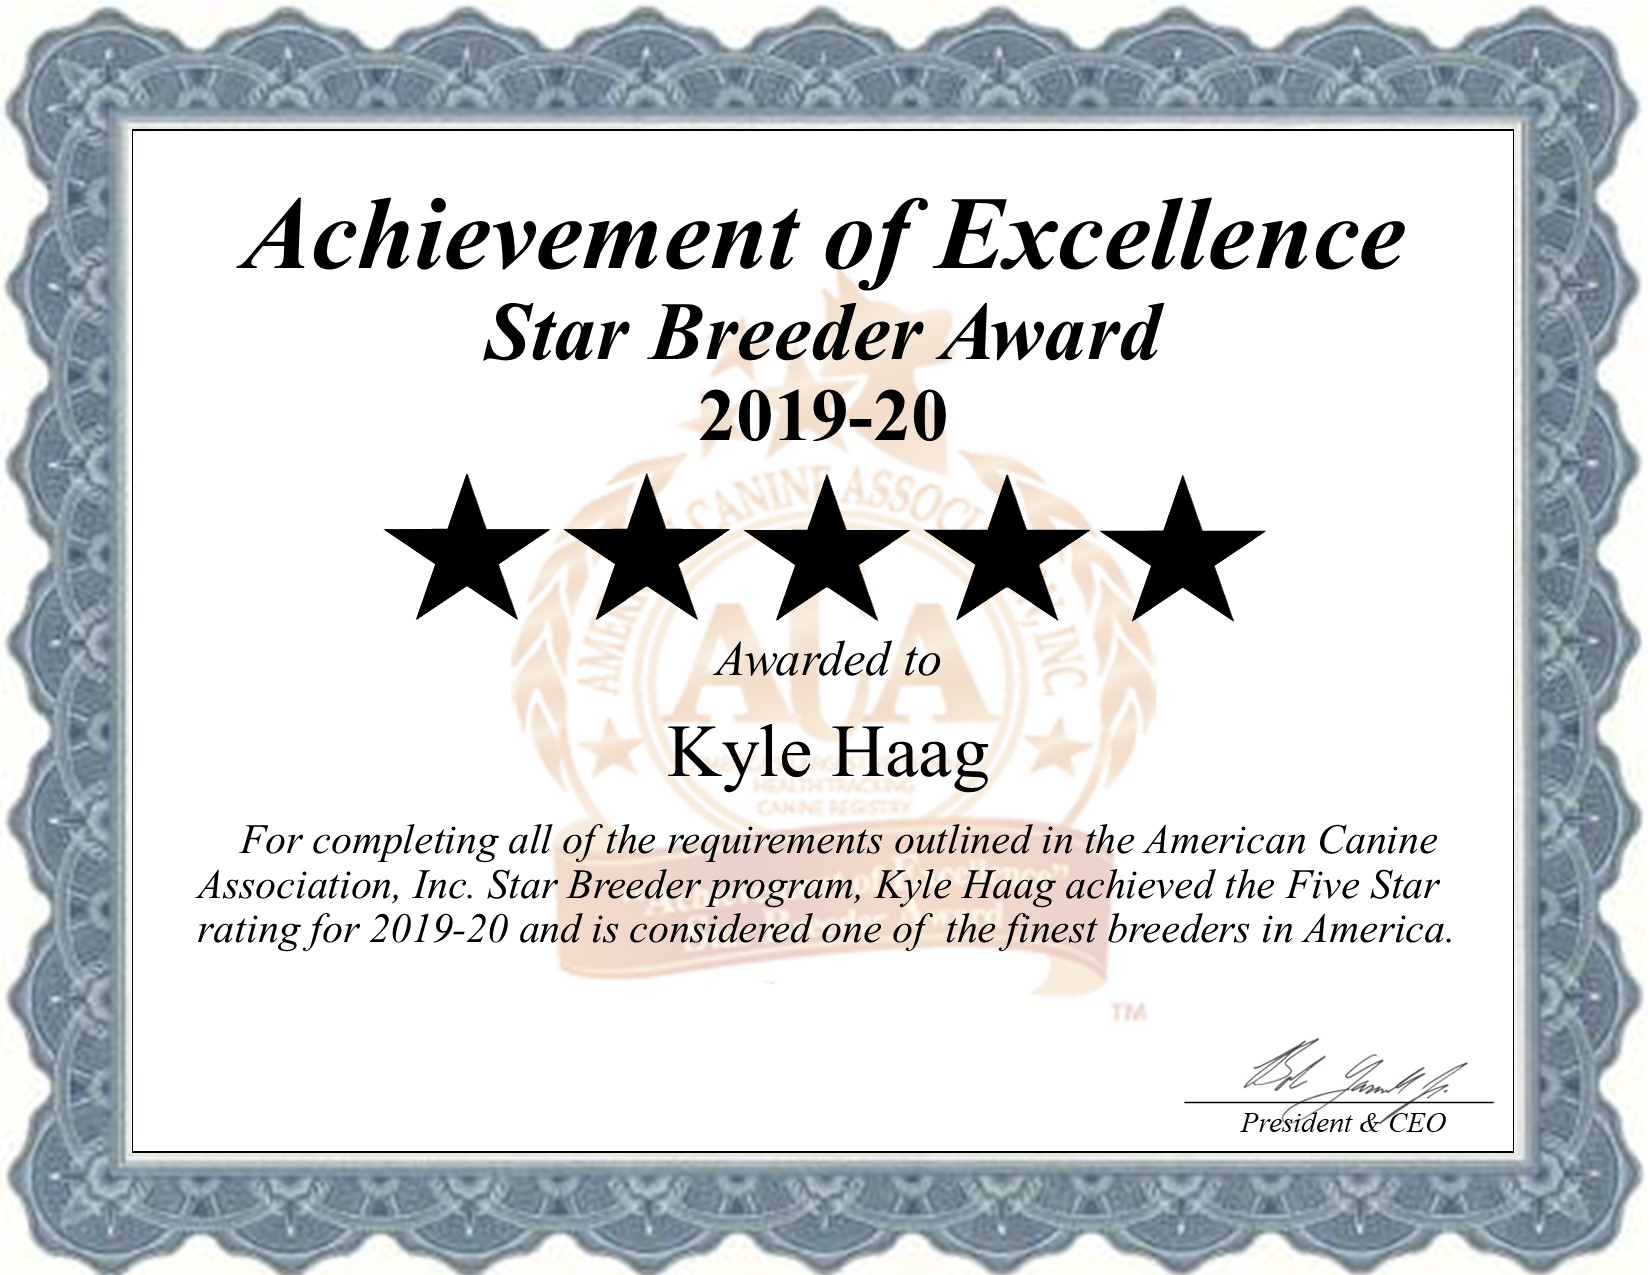 Kyle, Haag, dog, breeder, certificate, Kyle-Haag, puppy, dog, kennels, mill, puppymill, usda, 5-star, ACA, ICA, registered, show handler, king-charles, eden, valley, mn, minnesota, eden-valley, star